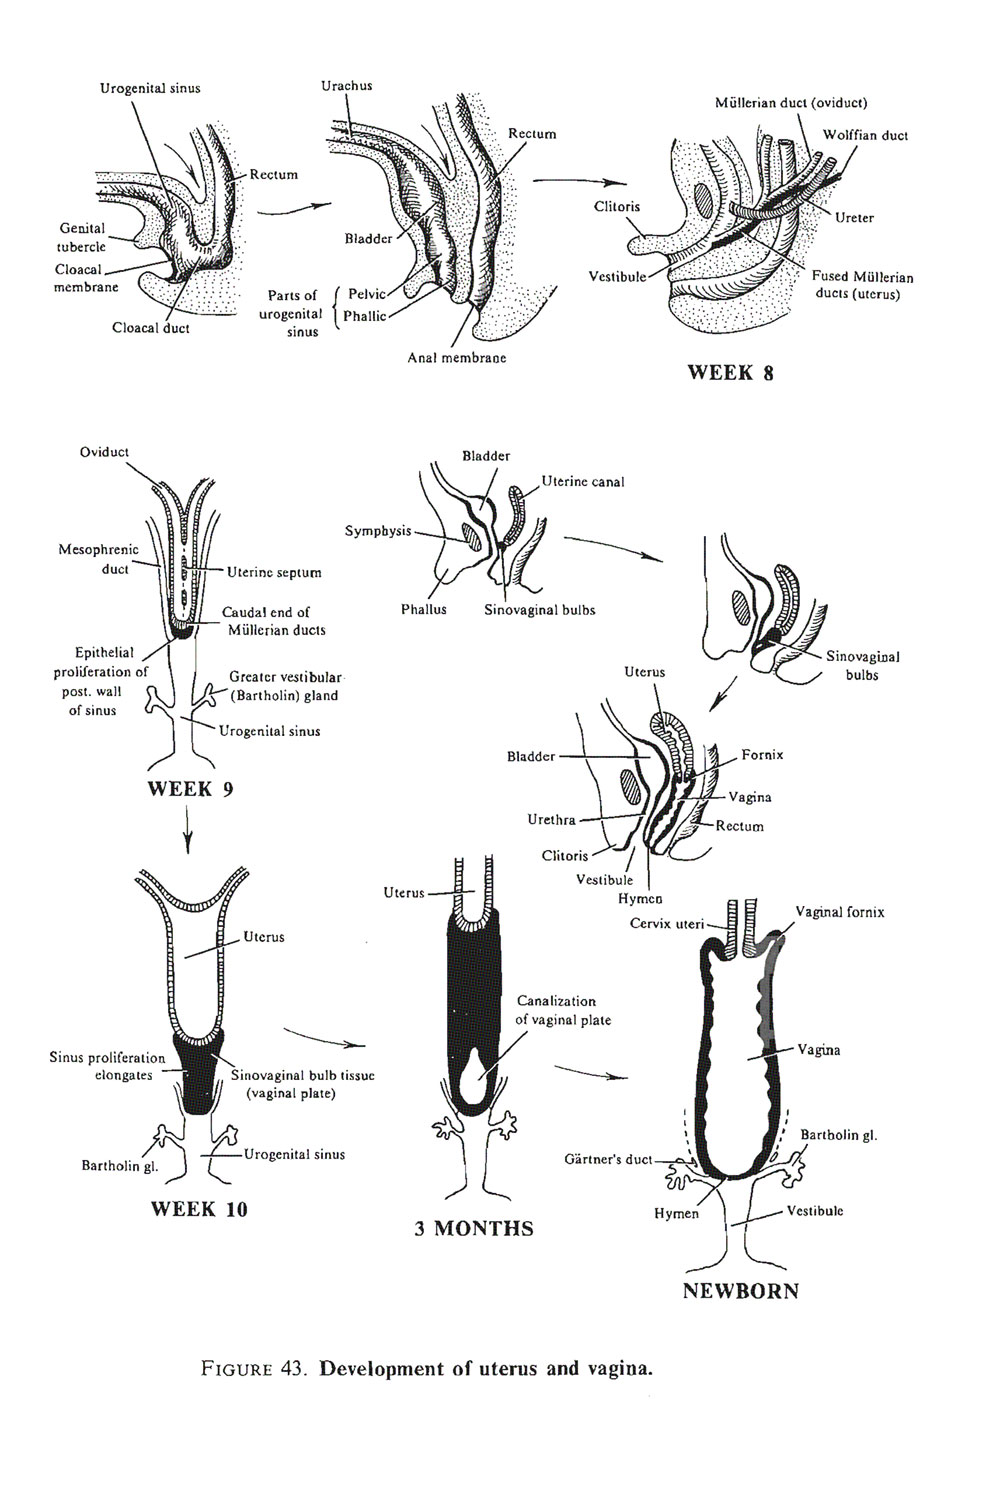 differentiation of the female genital tracts: uterus, vagina, auxiliary glands, mesenteries: image #2